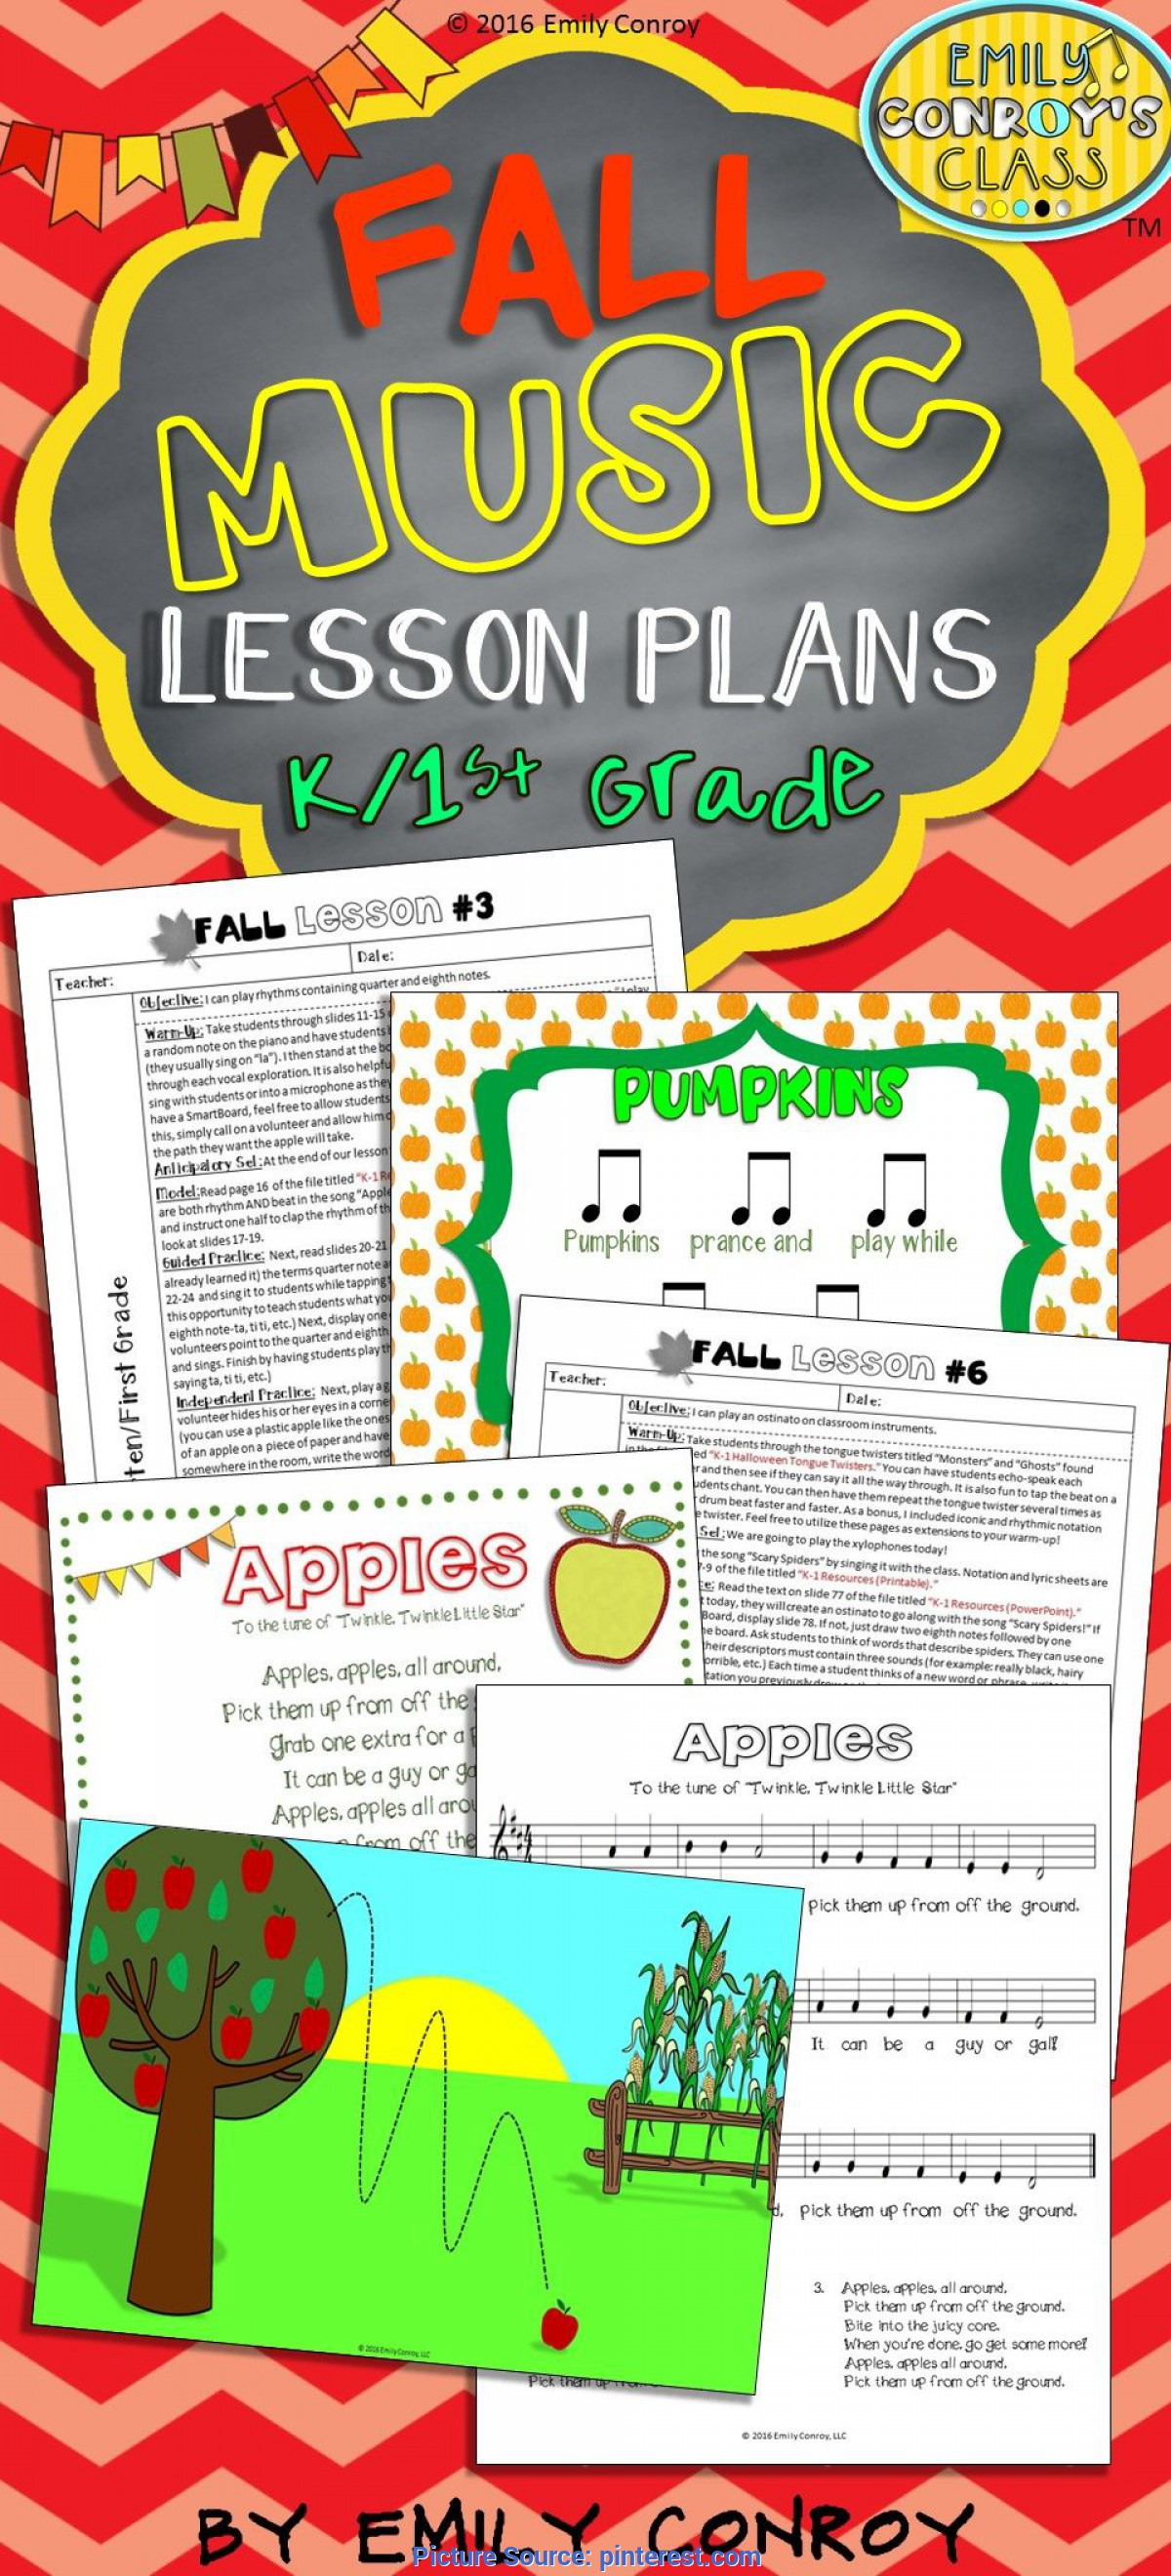 Interesting Math And Music Lesson Plans For Kindergarten Lessons For Music (Fall Music Lesson Plans For K/1St Grade